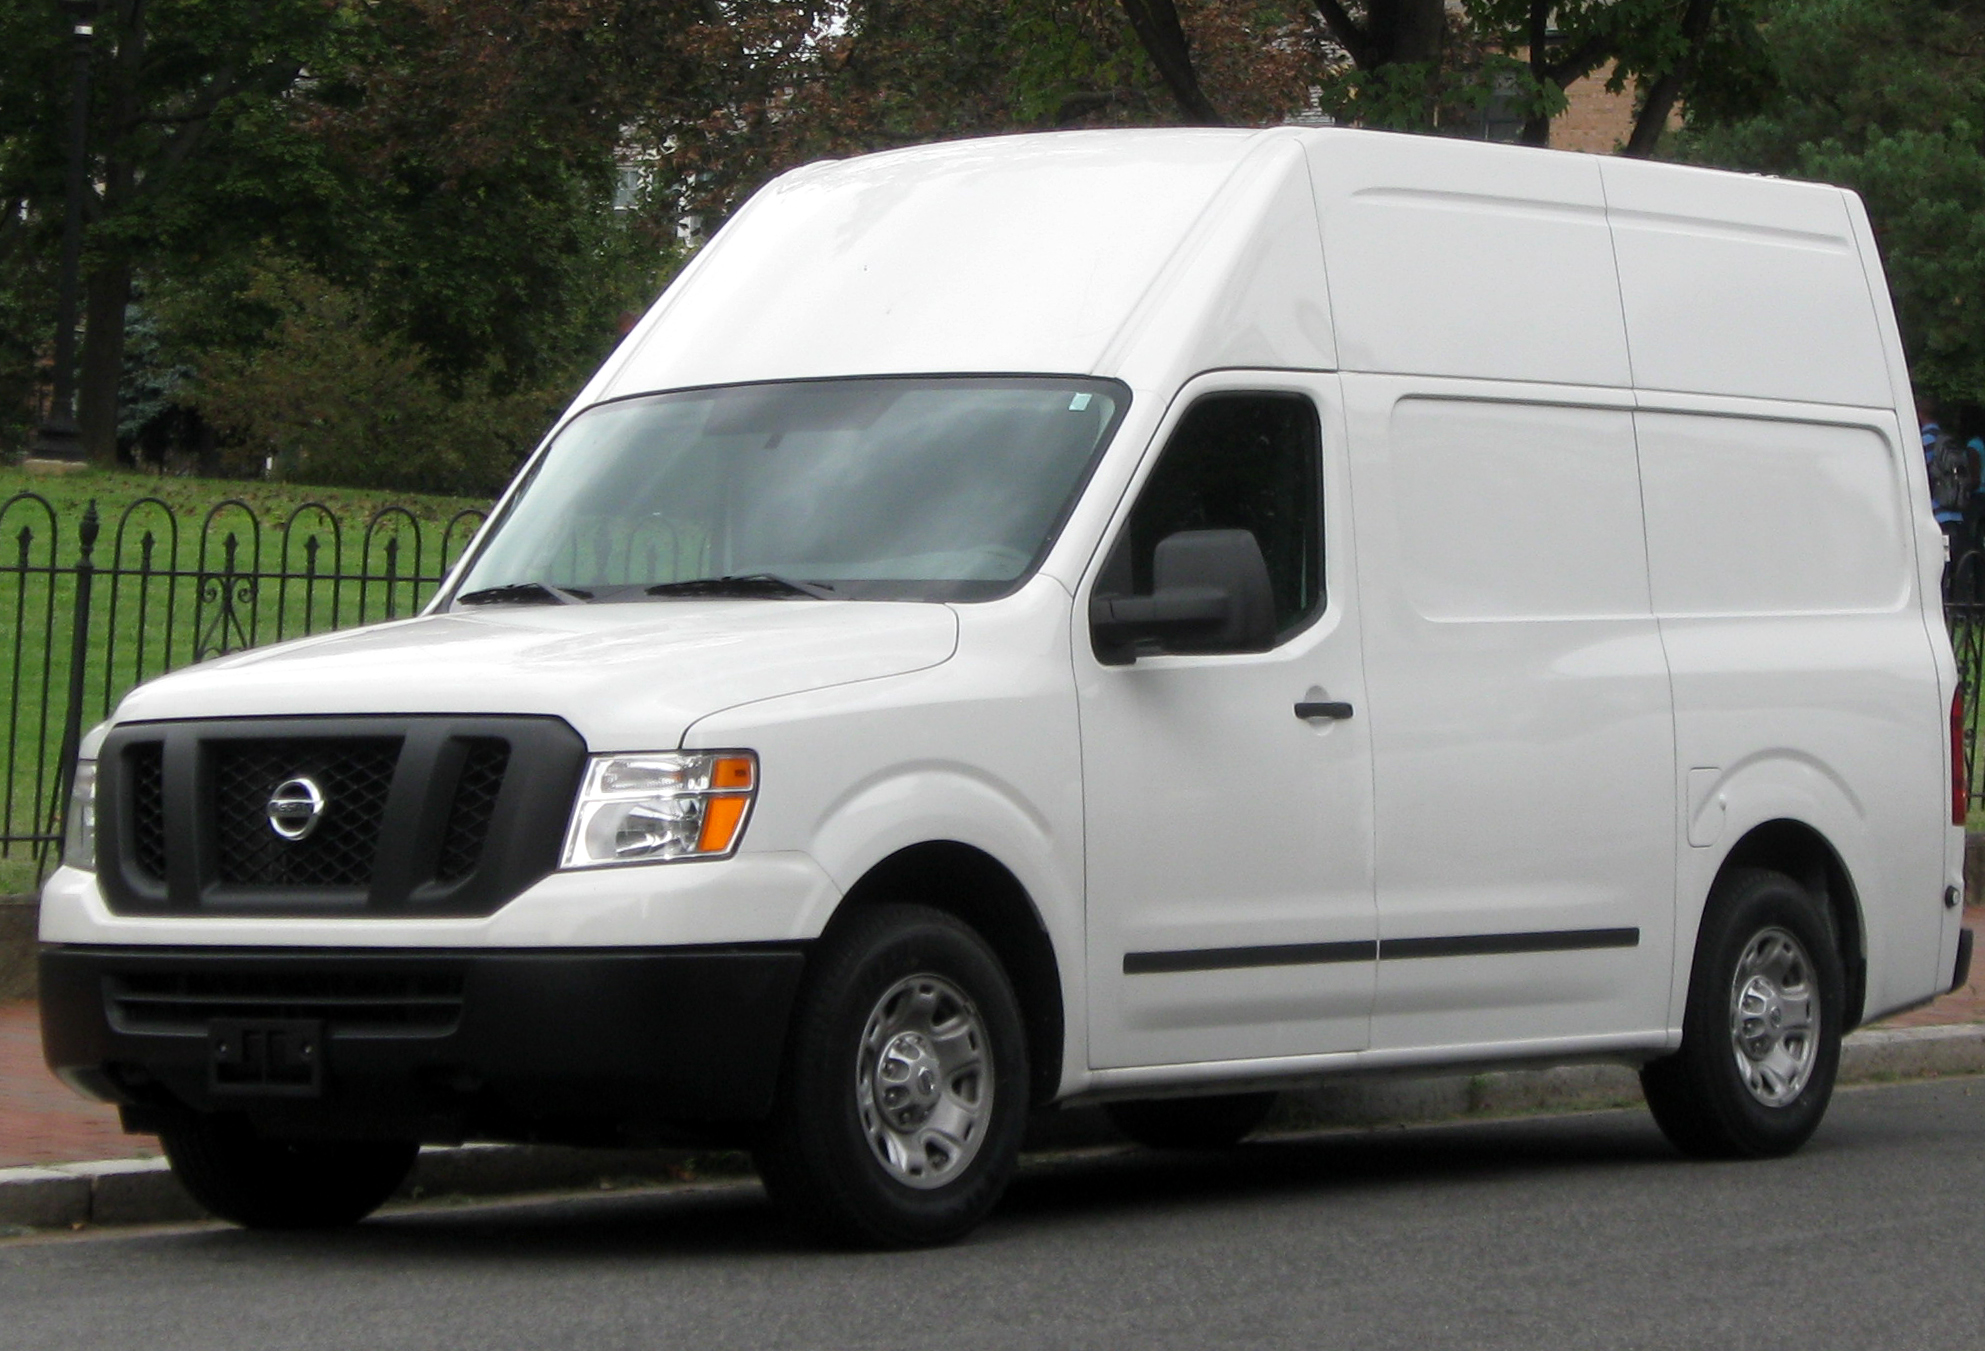 6ada04fd54 Debating on whether to purchase a used Nissan NV 2500 High Roof to live out  of and tour across the country. Better vans for long distances large space  to ...